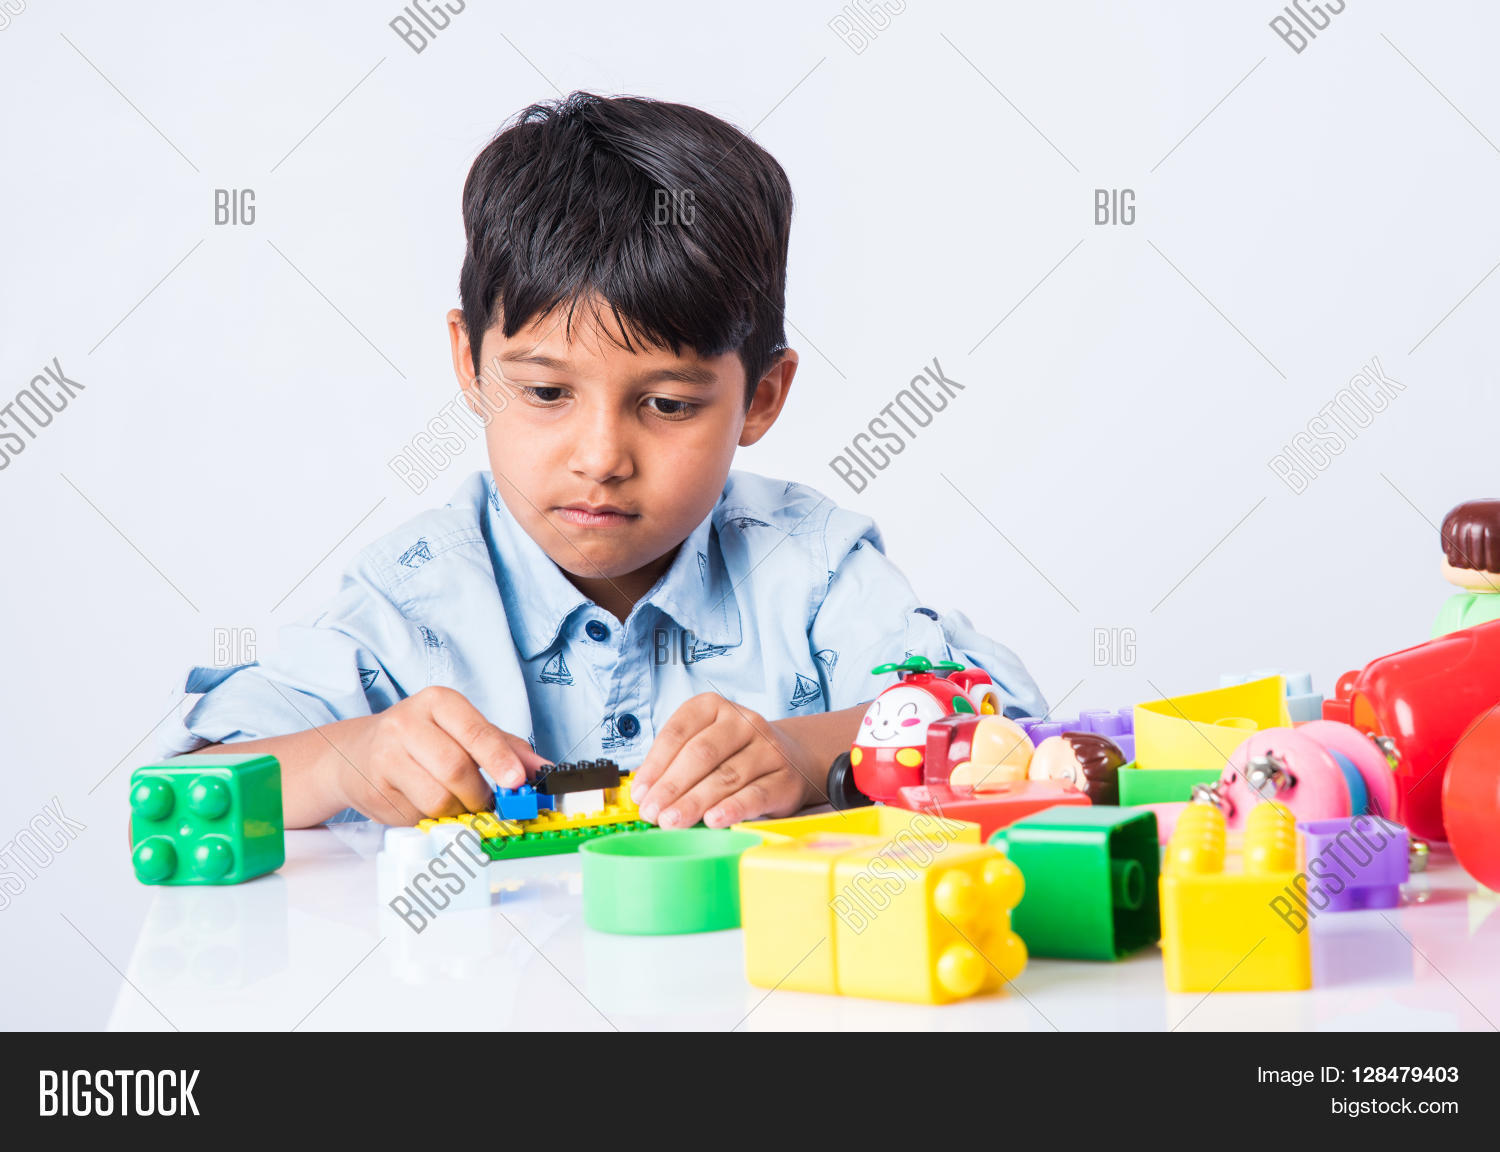 Big Boy Toys Games : Indian kid playing block toys image photo bigstock